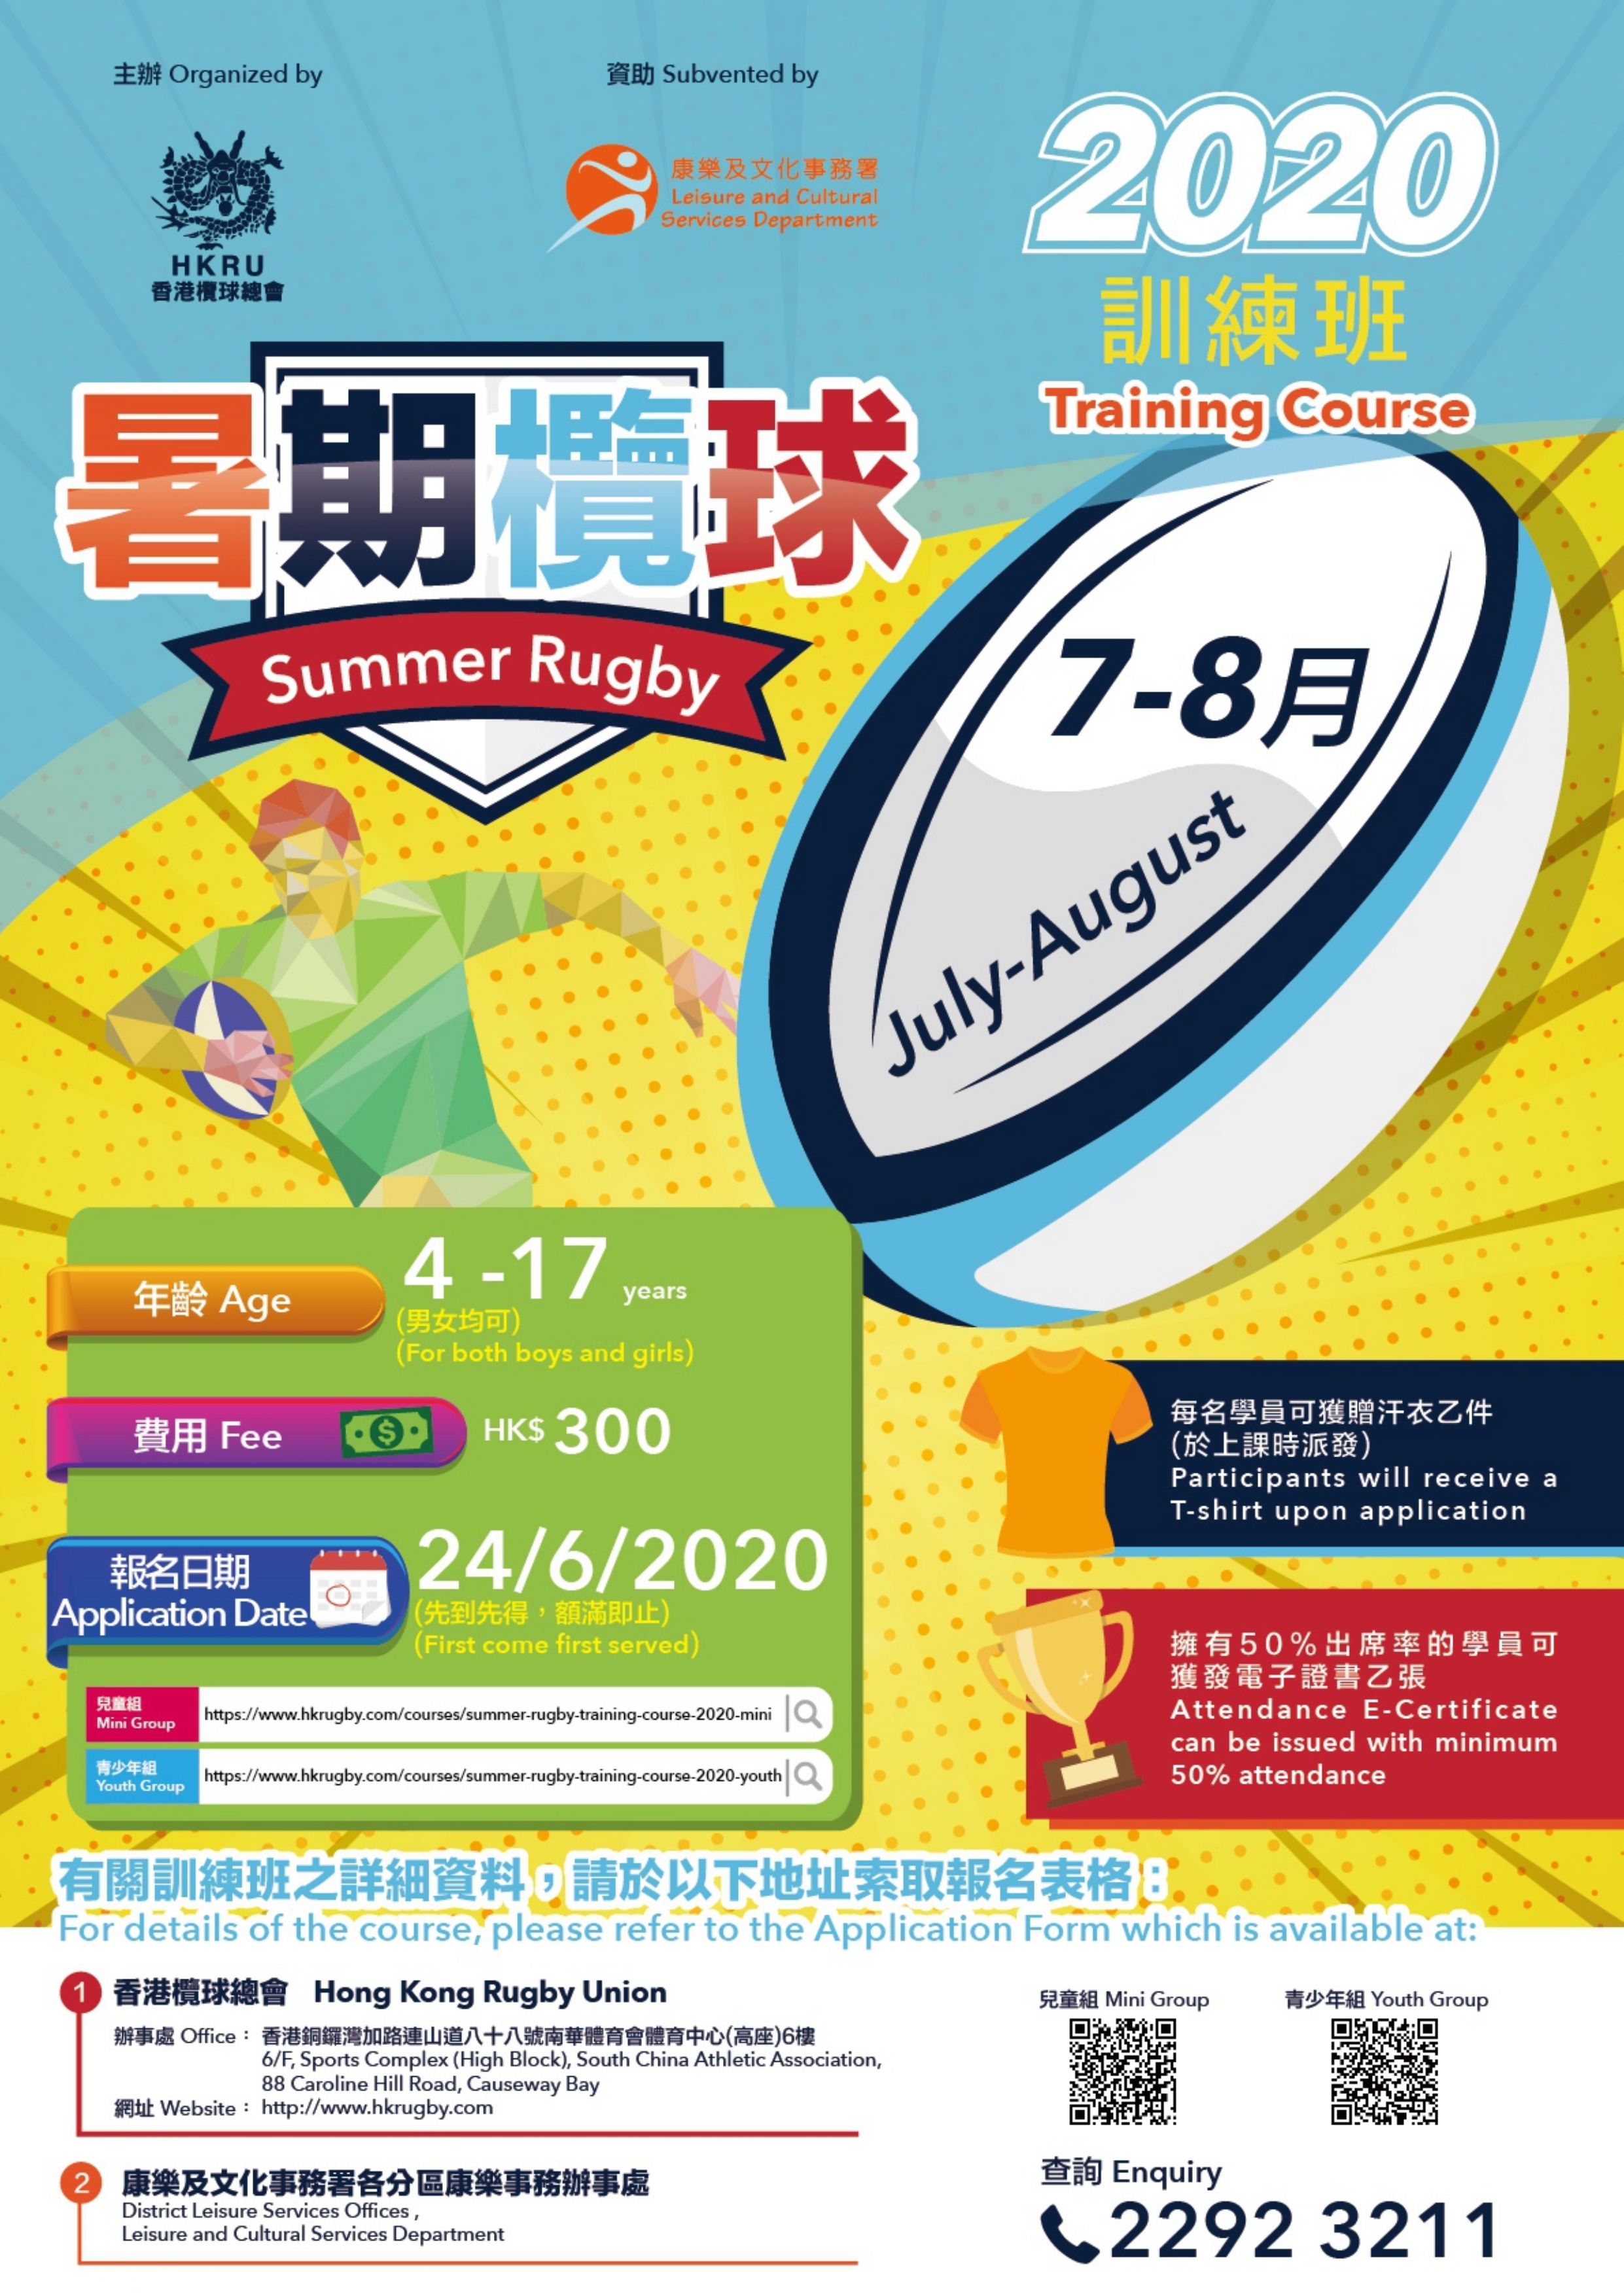 Summer Rugby Training Course 2020 - Youth (Age 12-17) thumbnail